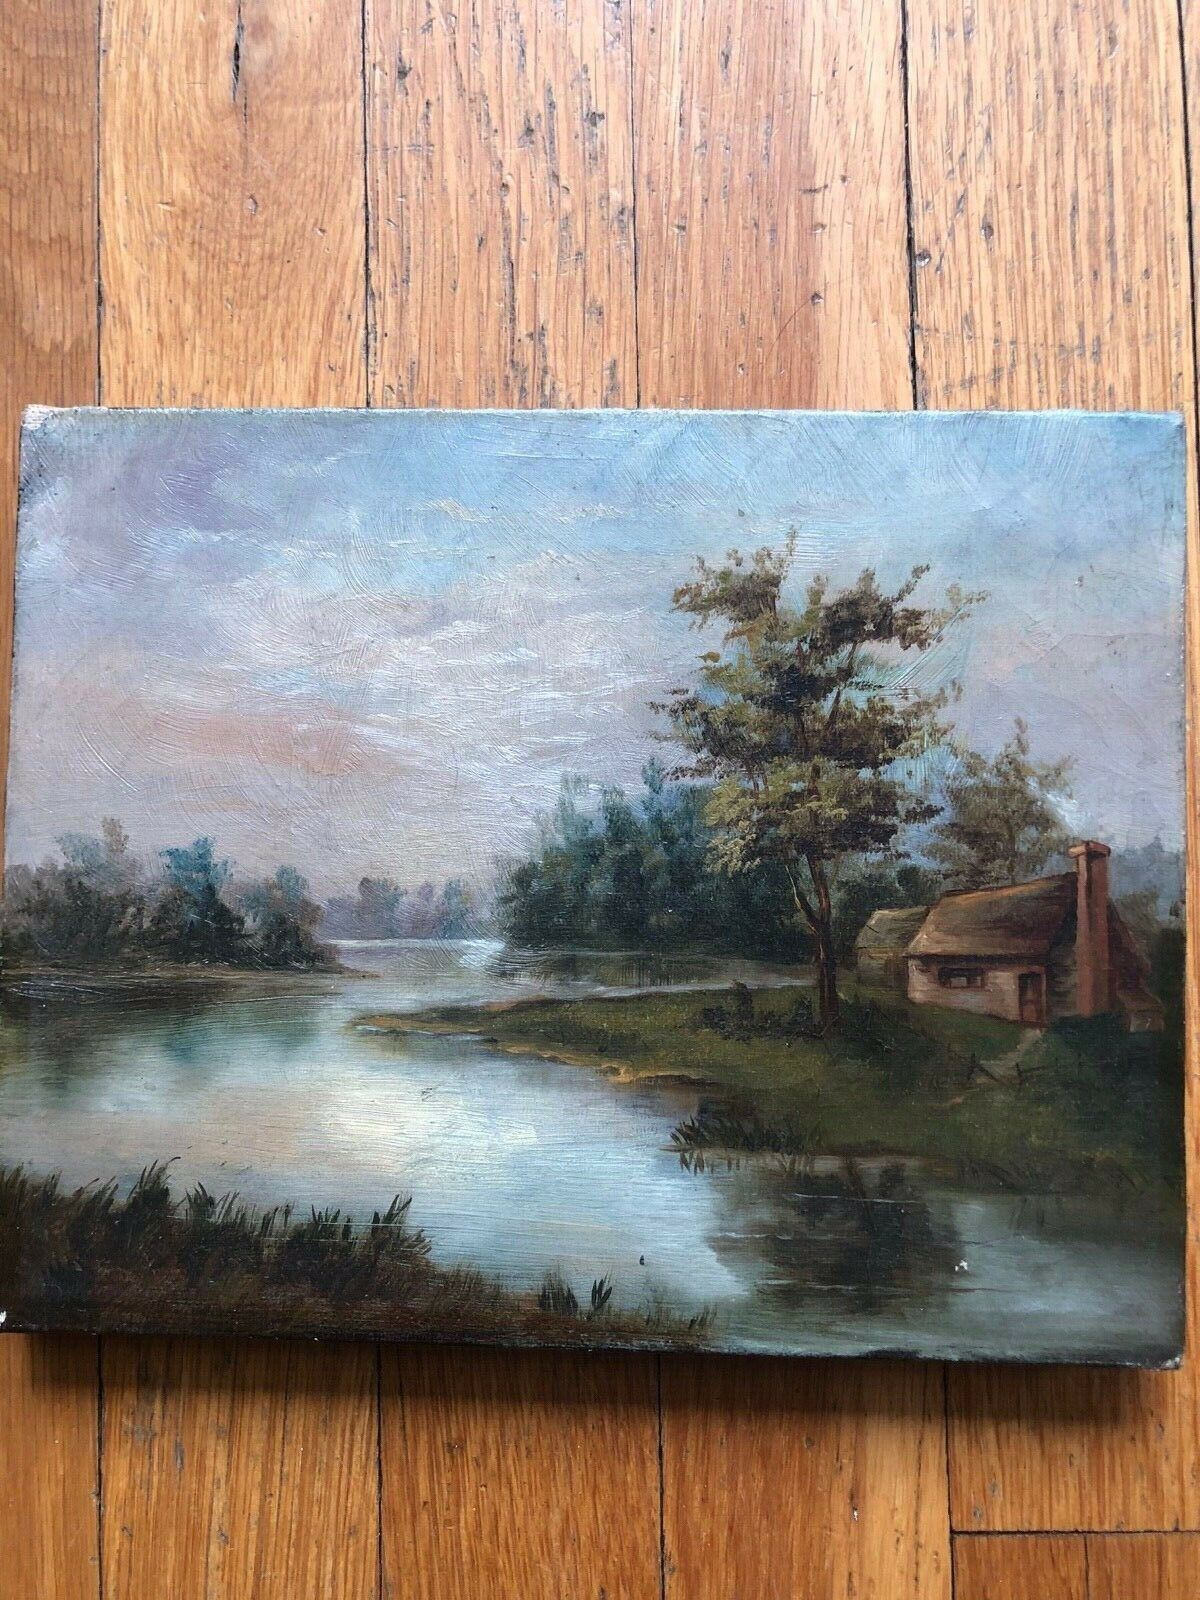 Late 19th century American landscape painting 2